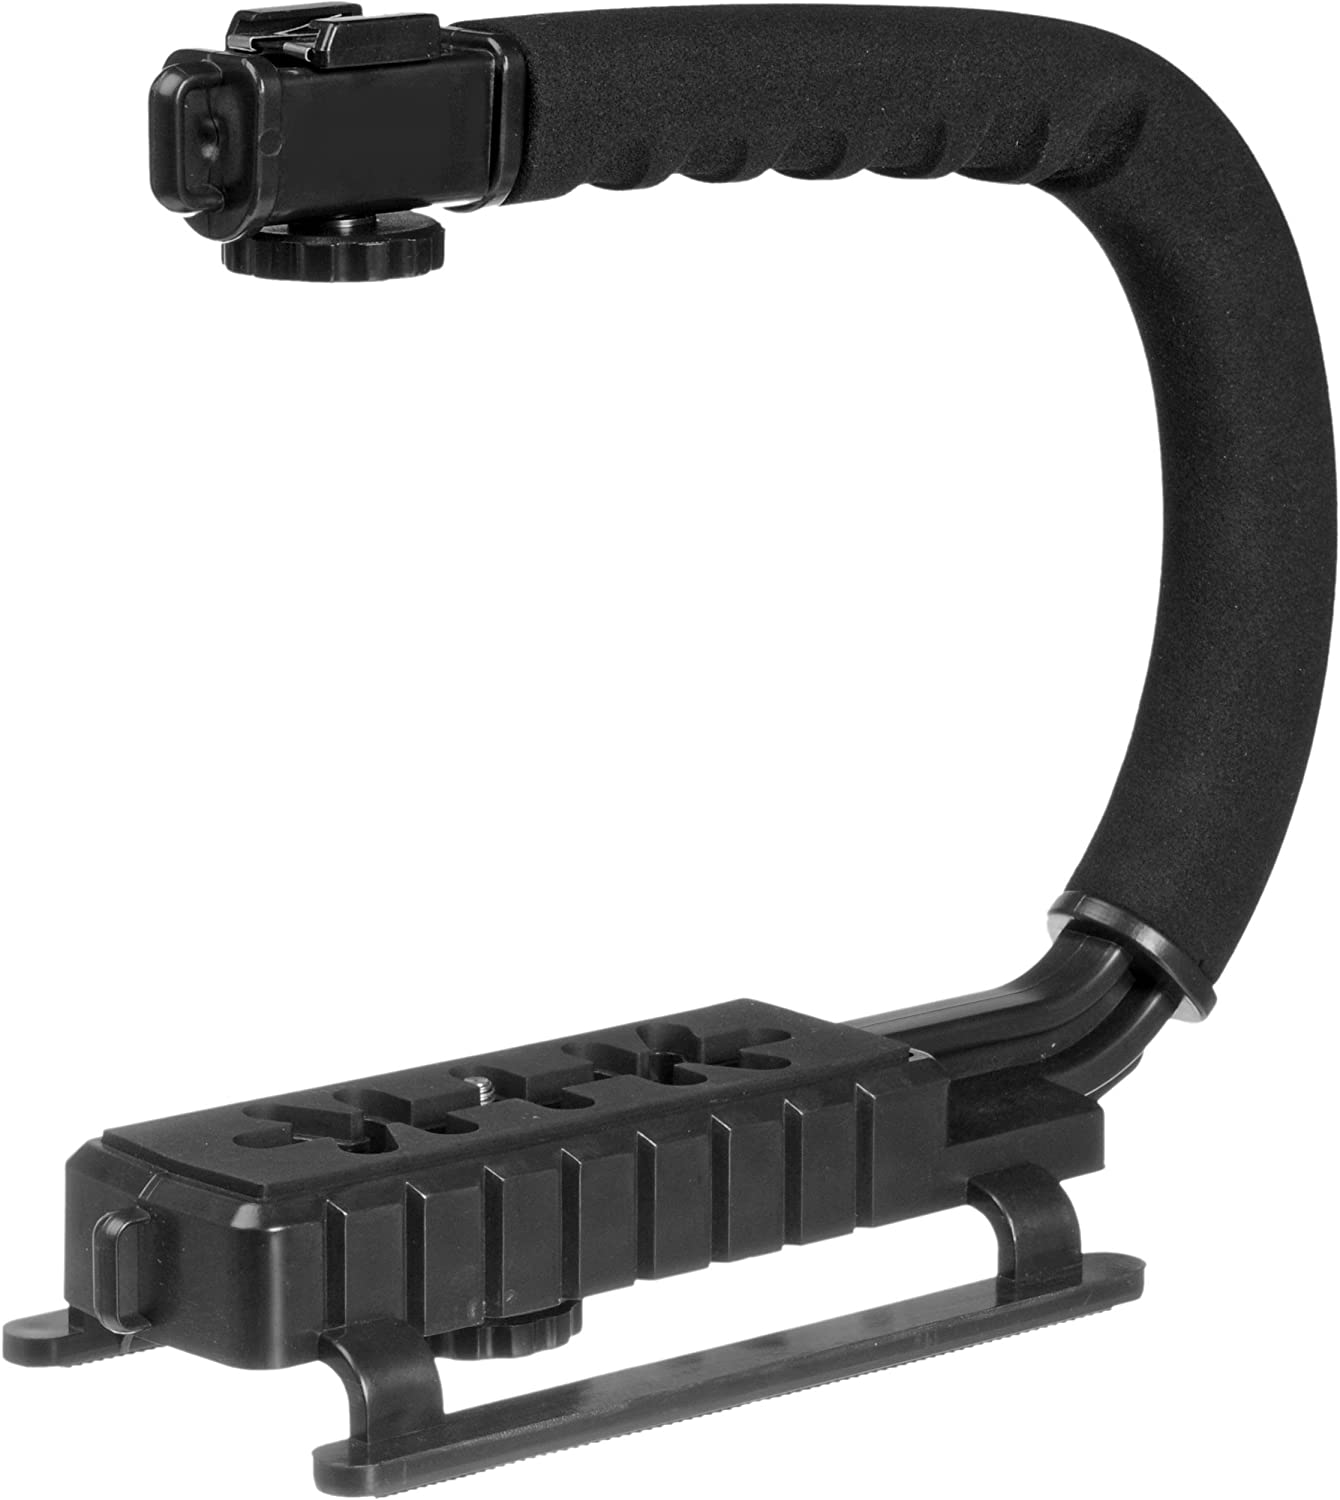 Canon PowerShot A510 Vertical Shoe Mount Stabilizer Handle Pro Video Stabilizing Handle Grip for